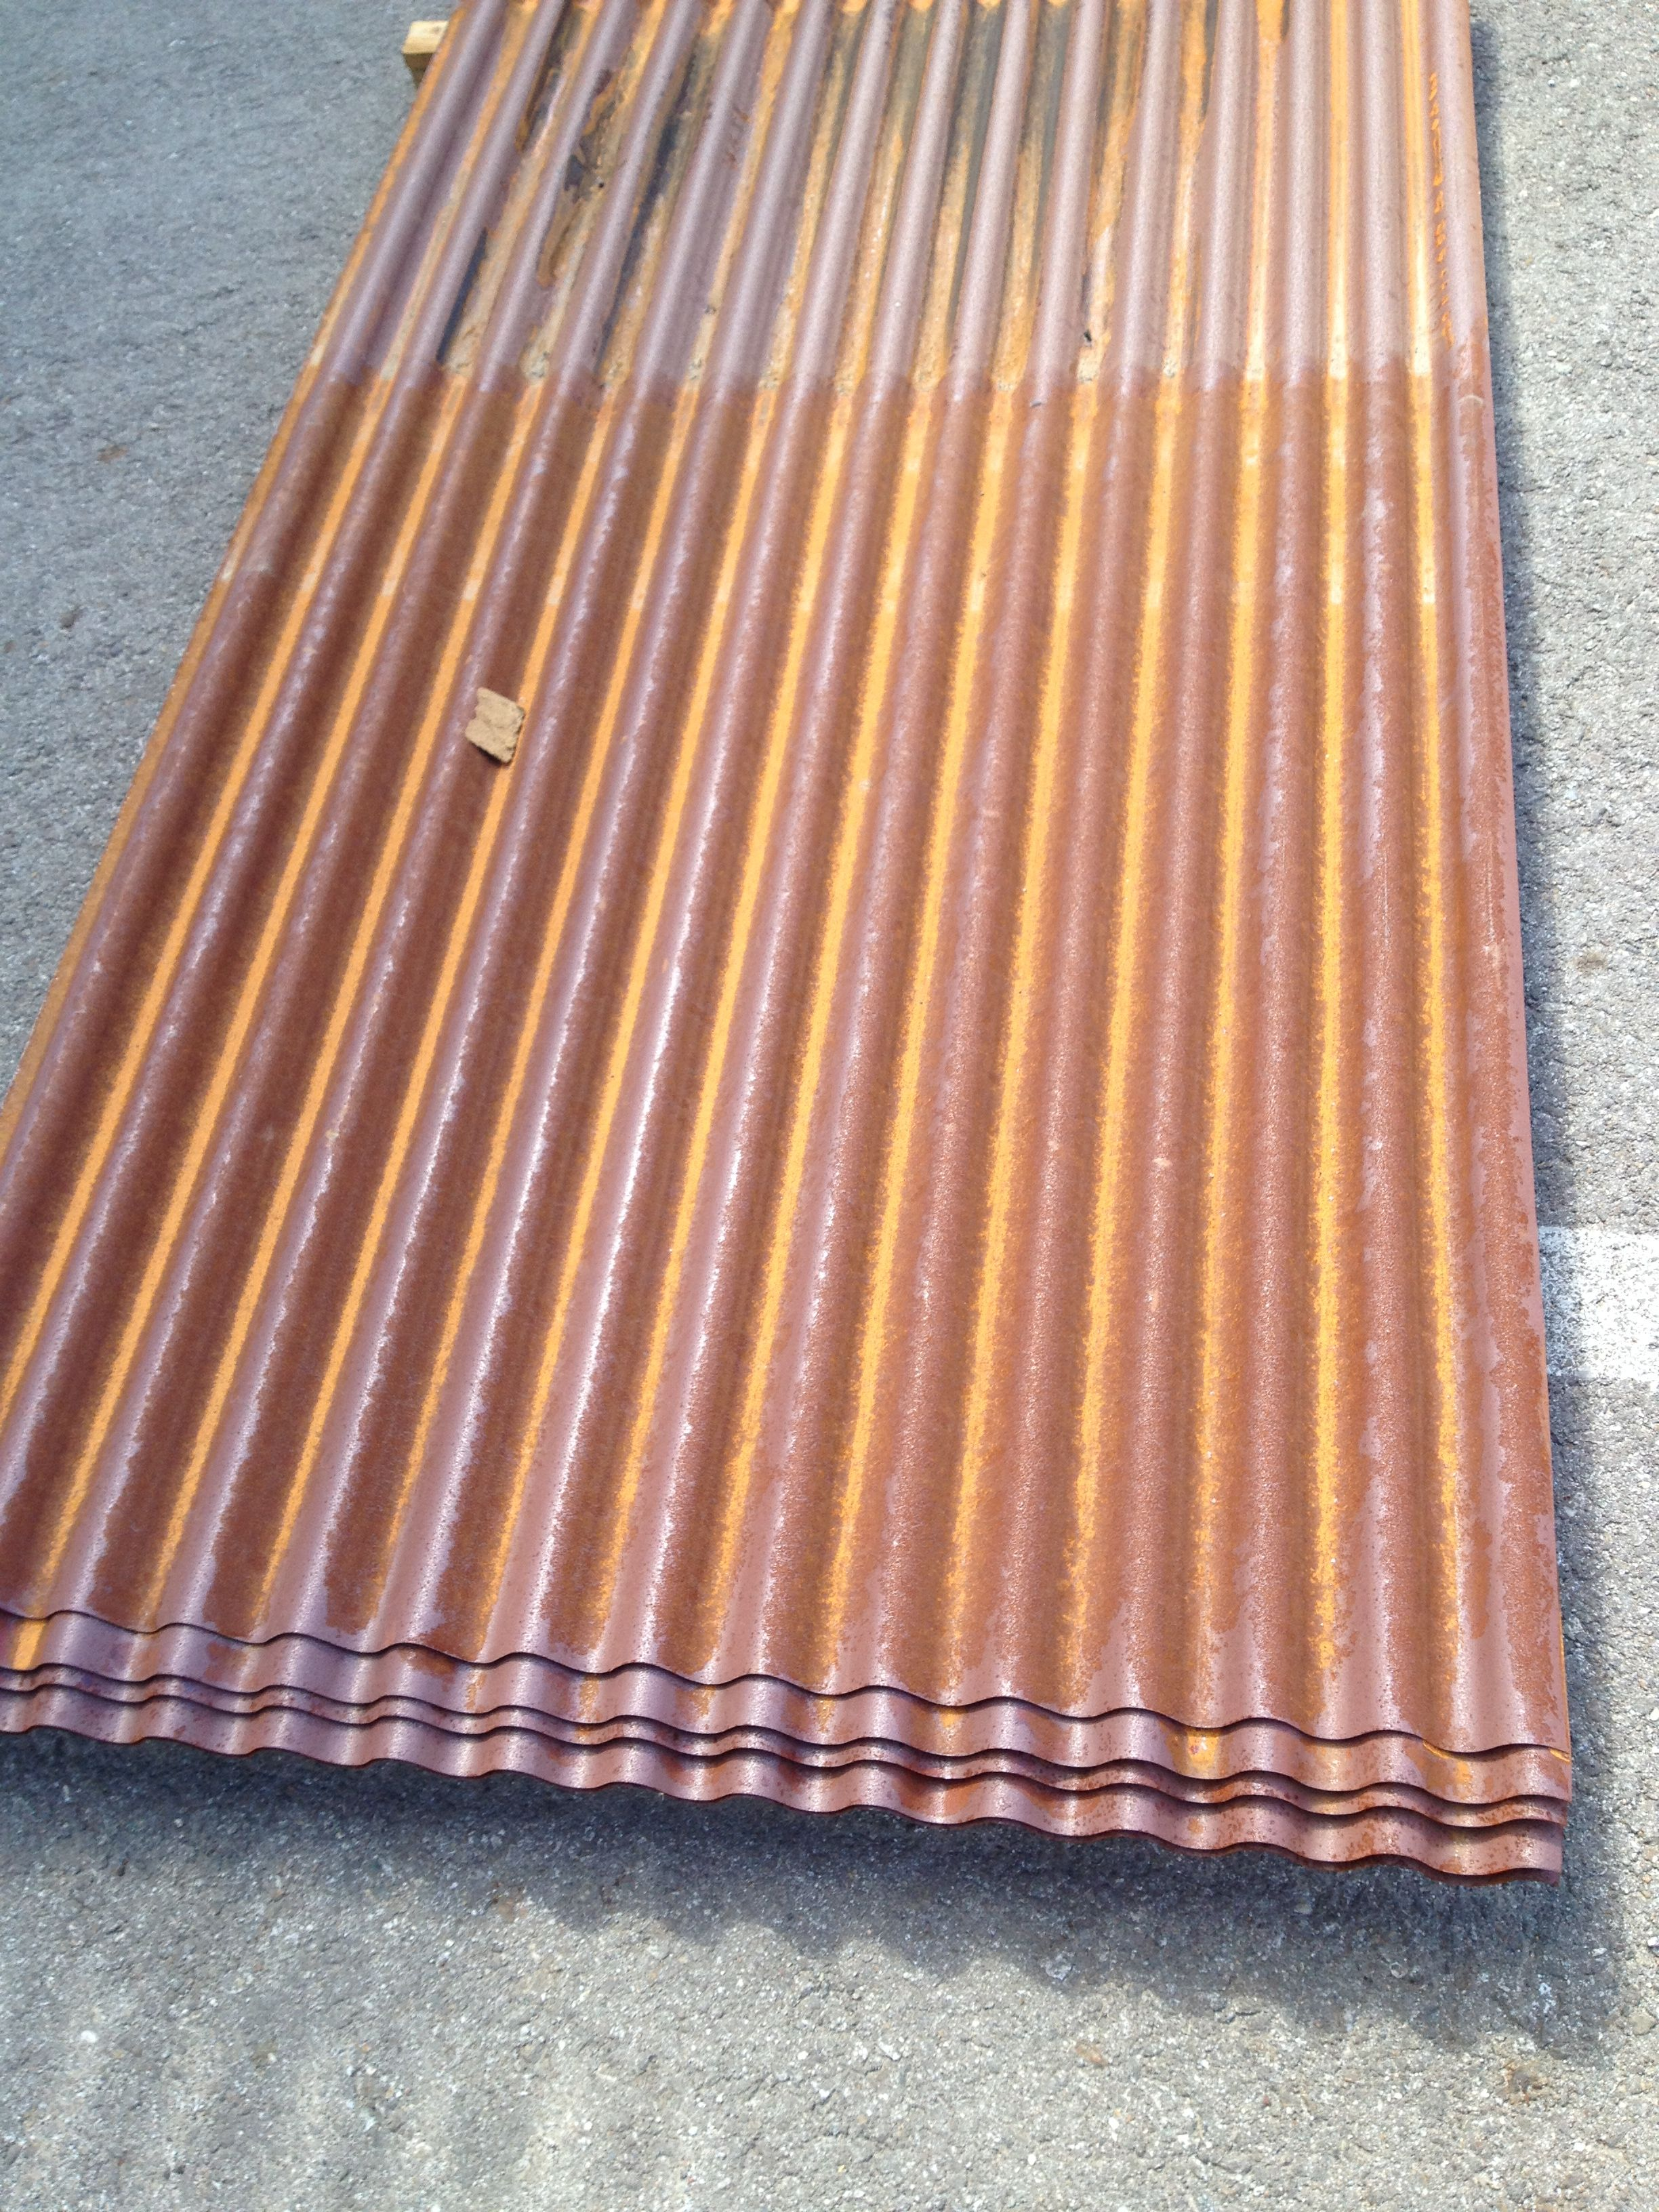 Rusted 7 8 Rib Corrugated Panels From Riverside Corrugated Www Rivcorr Com Metal Fence Panels Metal Fence Metal Panels